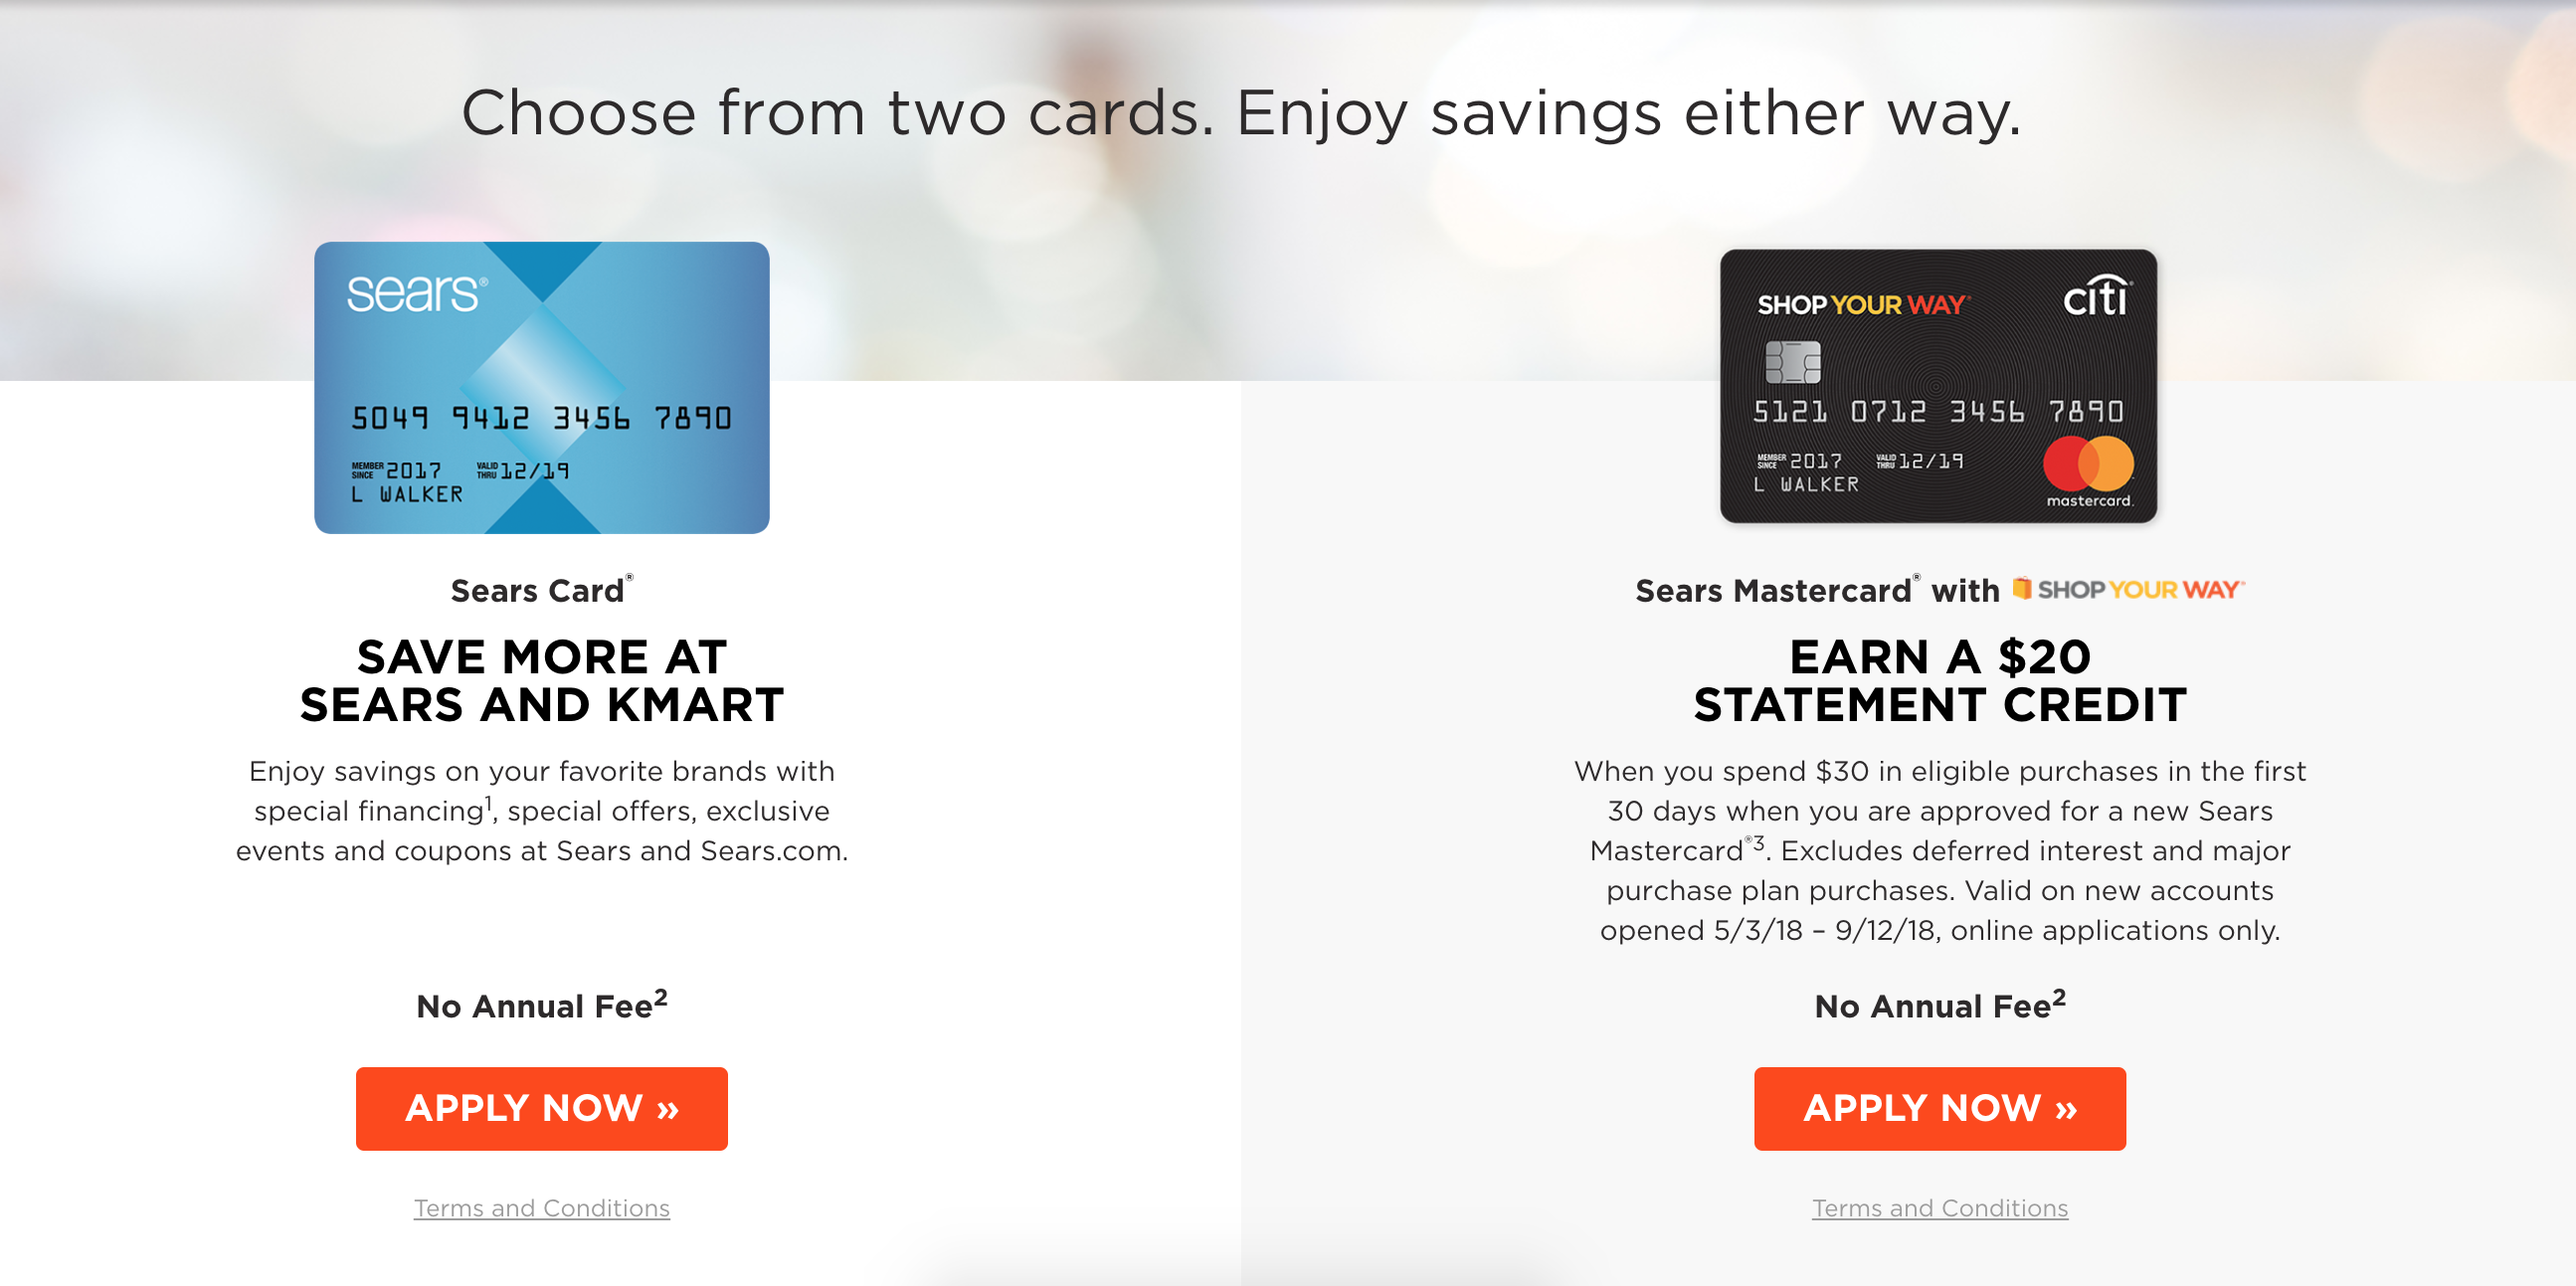 Sears Credit Cards Shop Your Way Rewards Are They Worth It